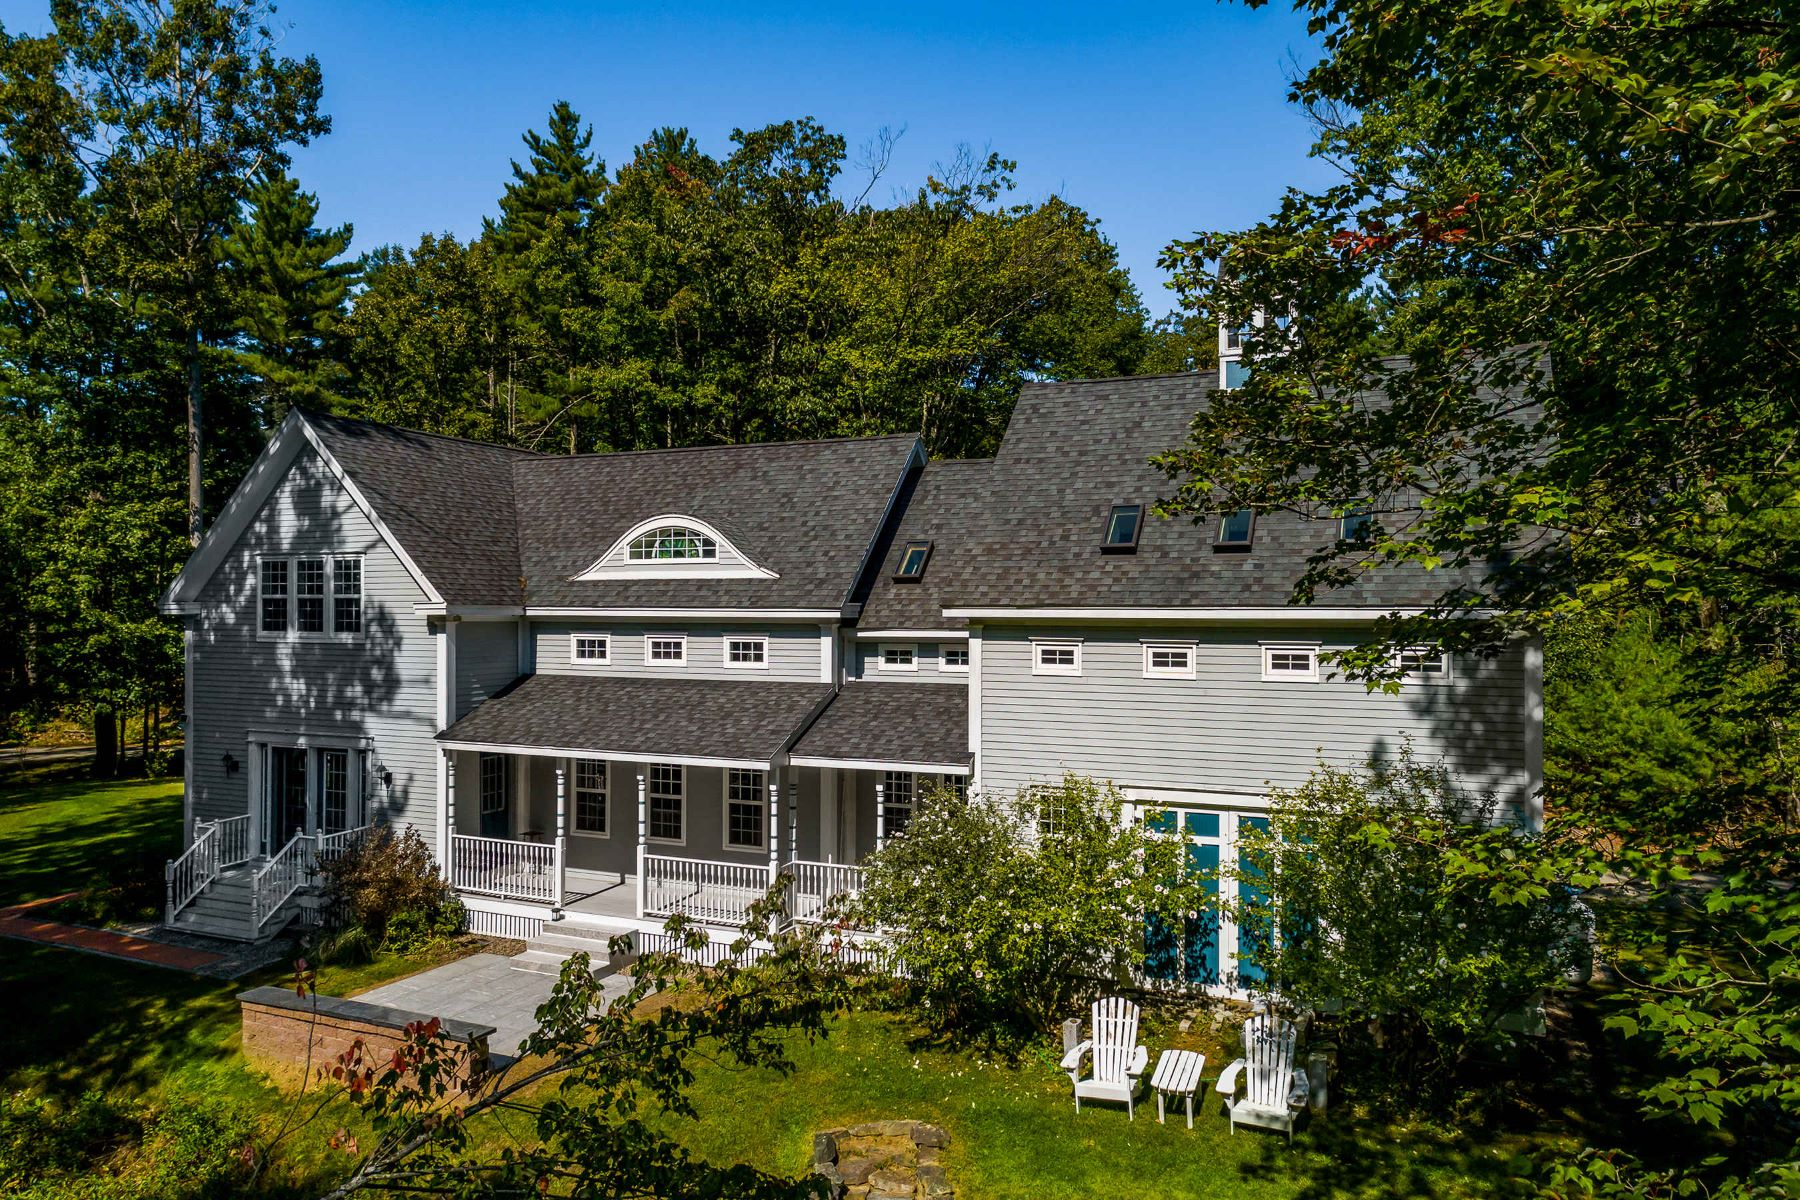 Single Family Homes for Sale at Gorgeous Cape on 2 Picturesque Acres in Ogunquit 62 Jothams Lane Ogunquit, Maine 03907 United States